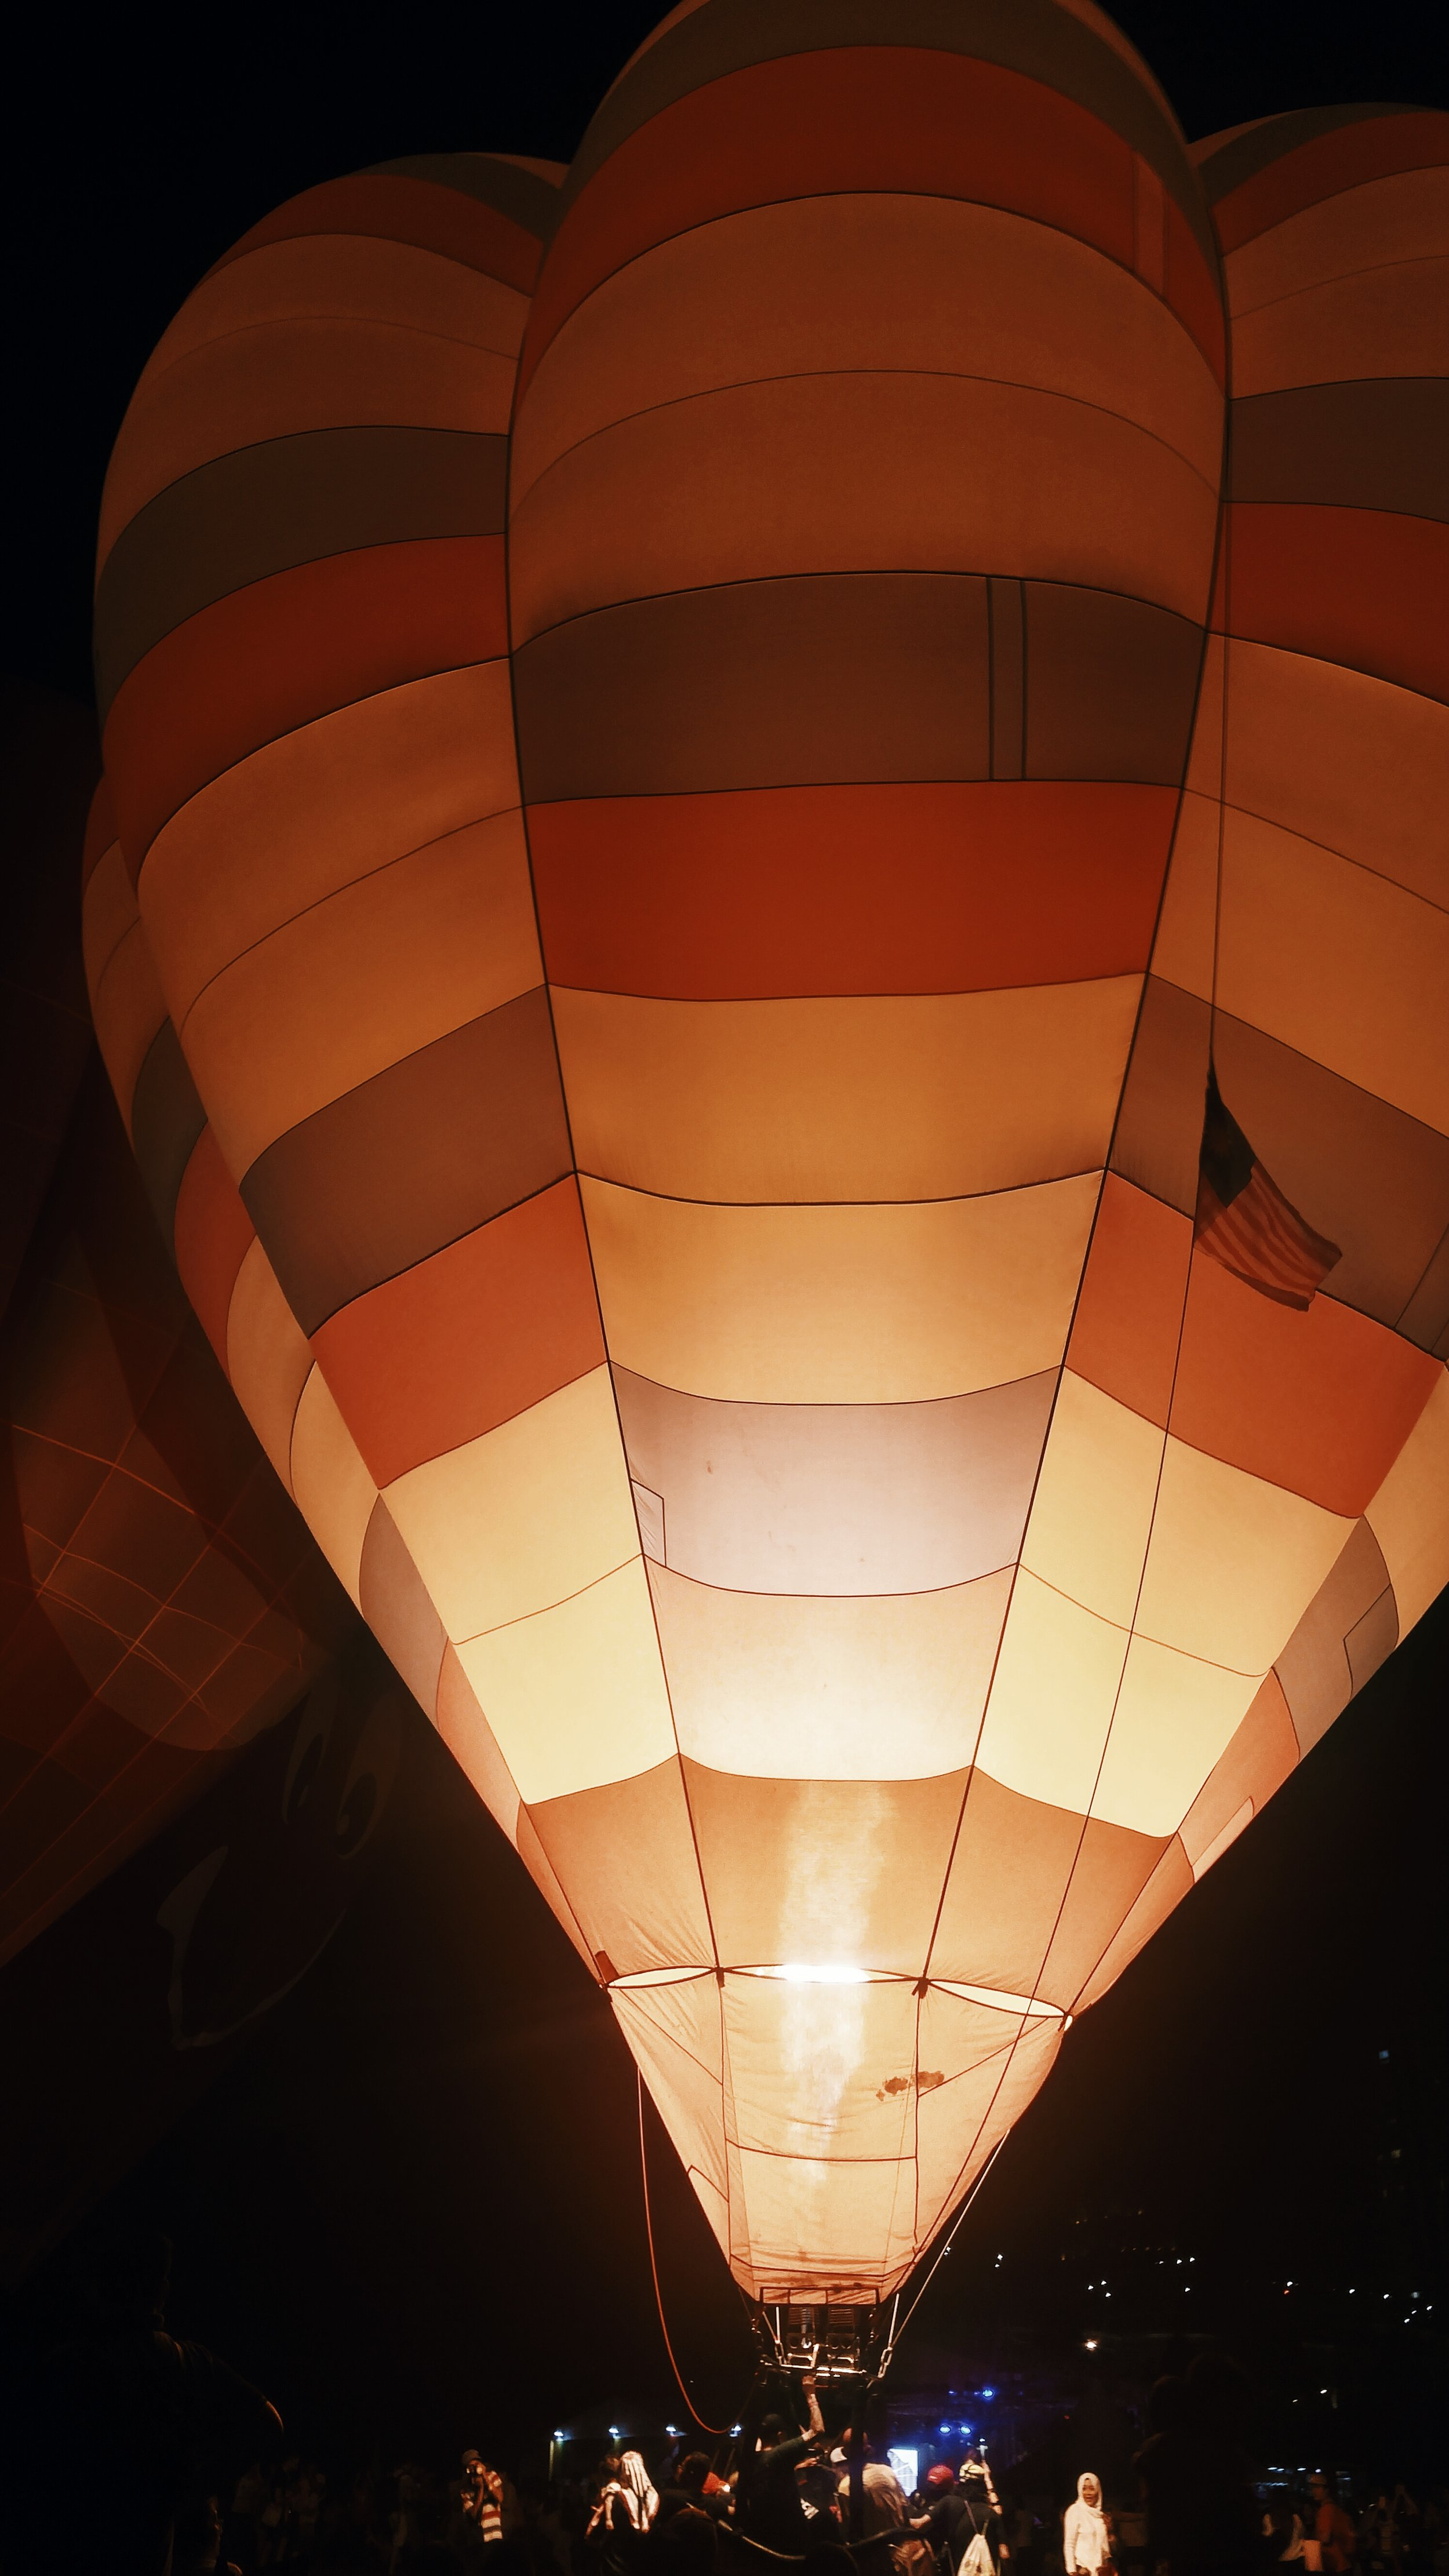 the brightest balloon of the night is a Malaysian balloon, 'Henry J'. cute name!